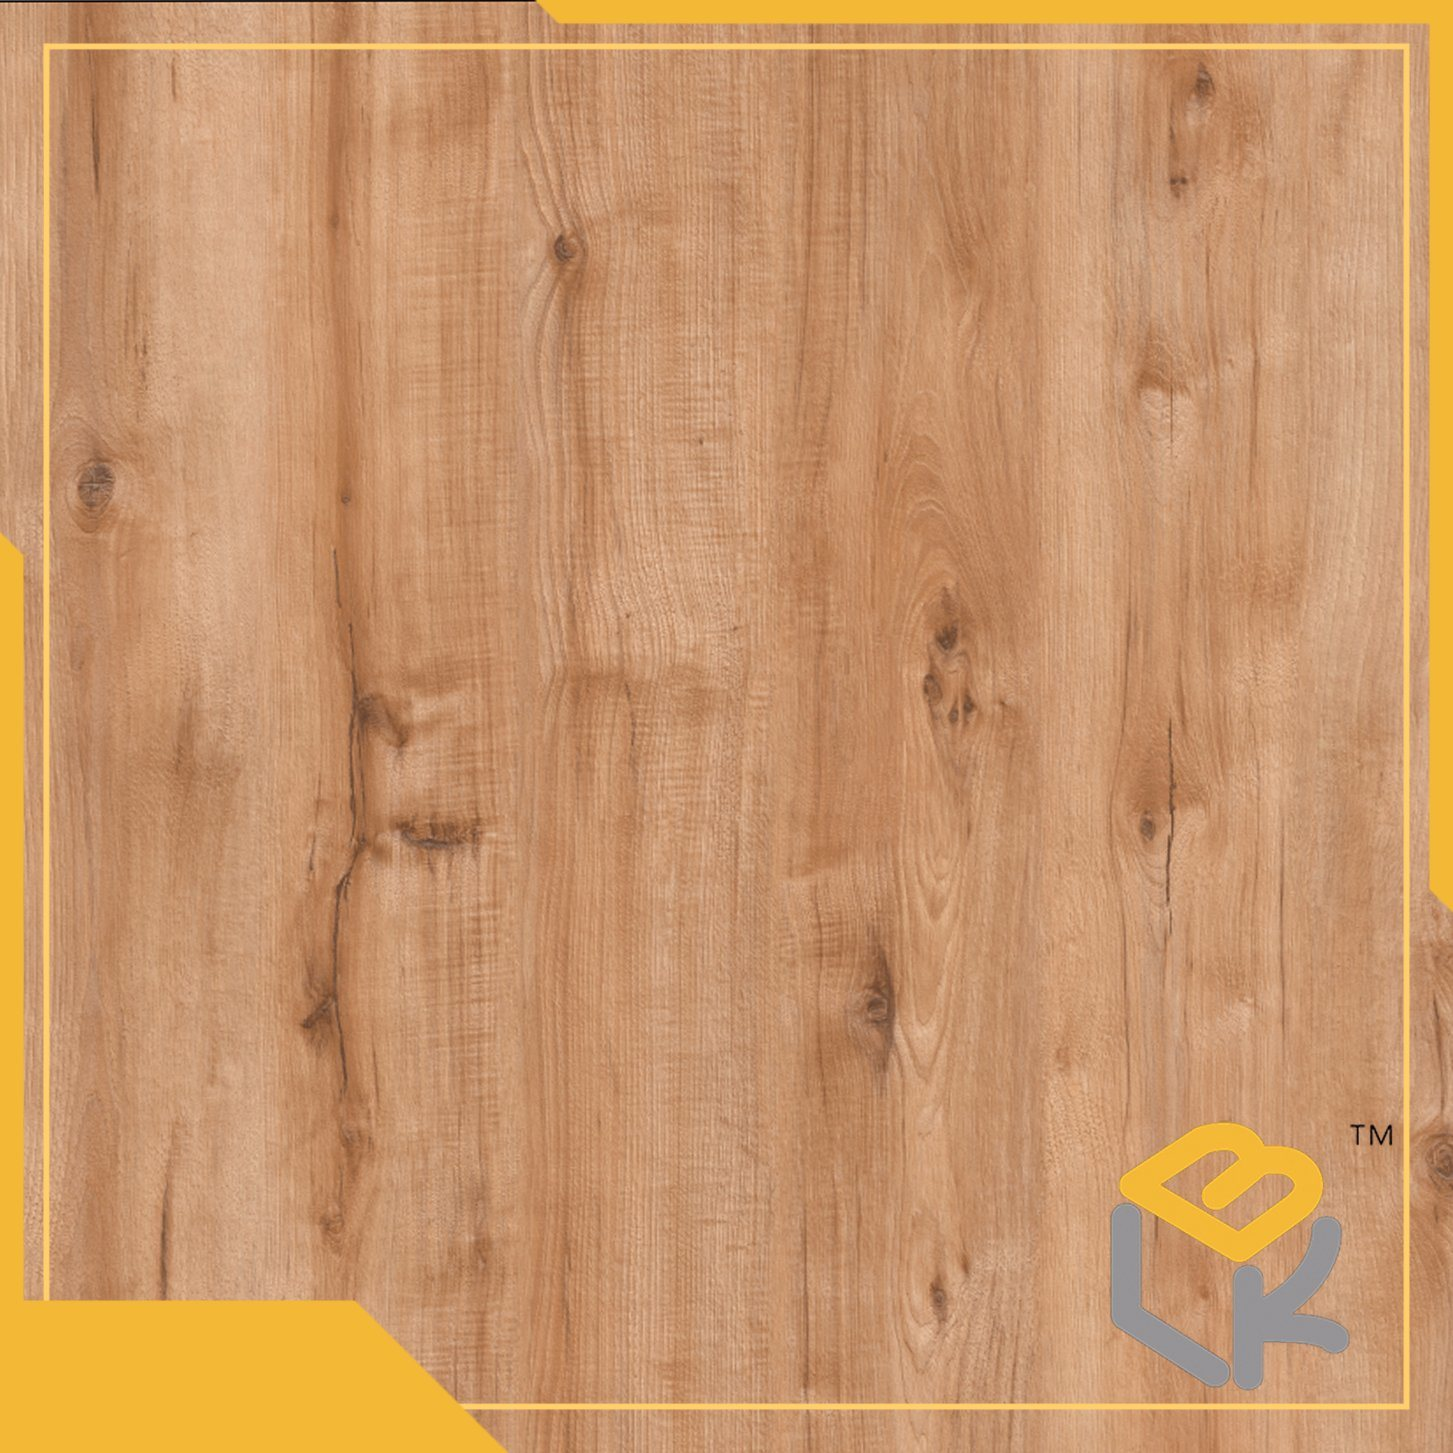 Wood Grain Decorative Particle Board Mdf Hpl For Furniture From Changzhou China Building Material Panel